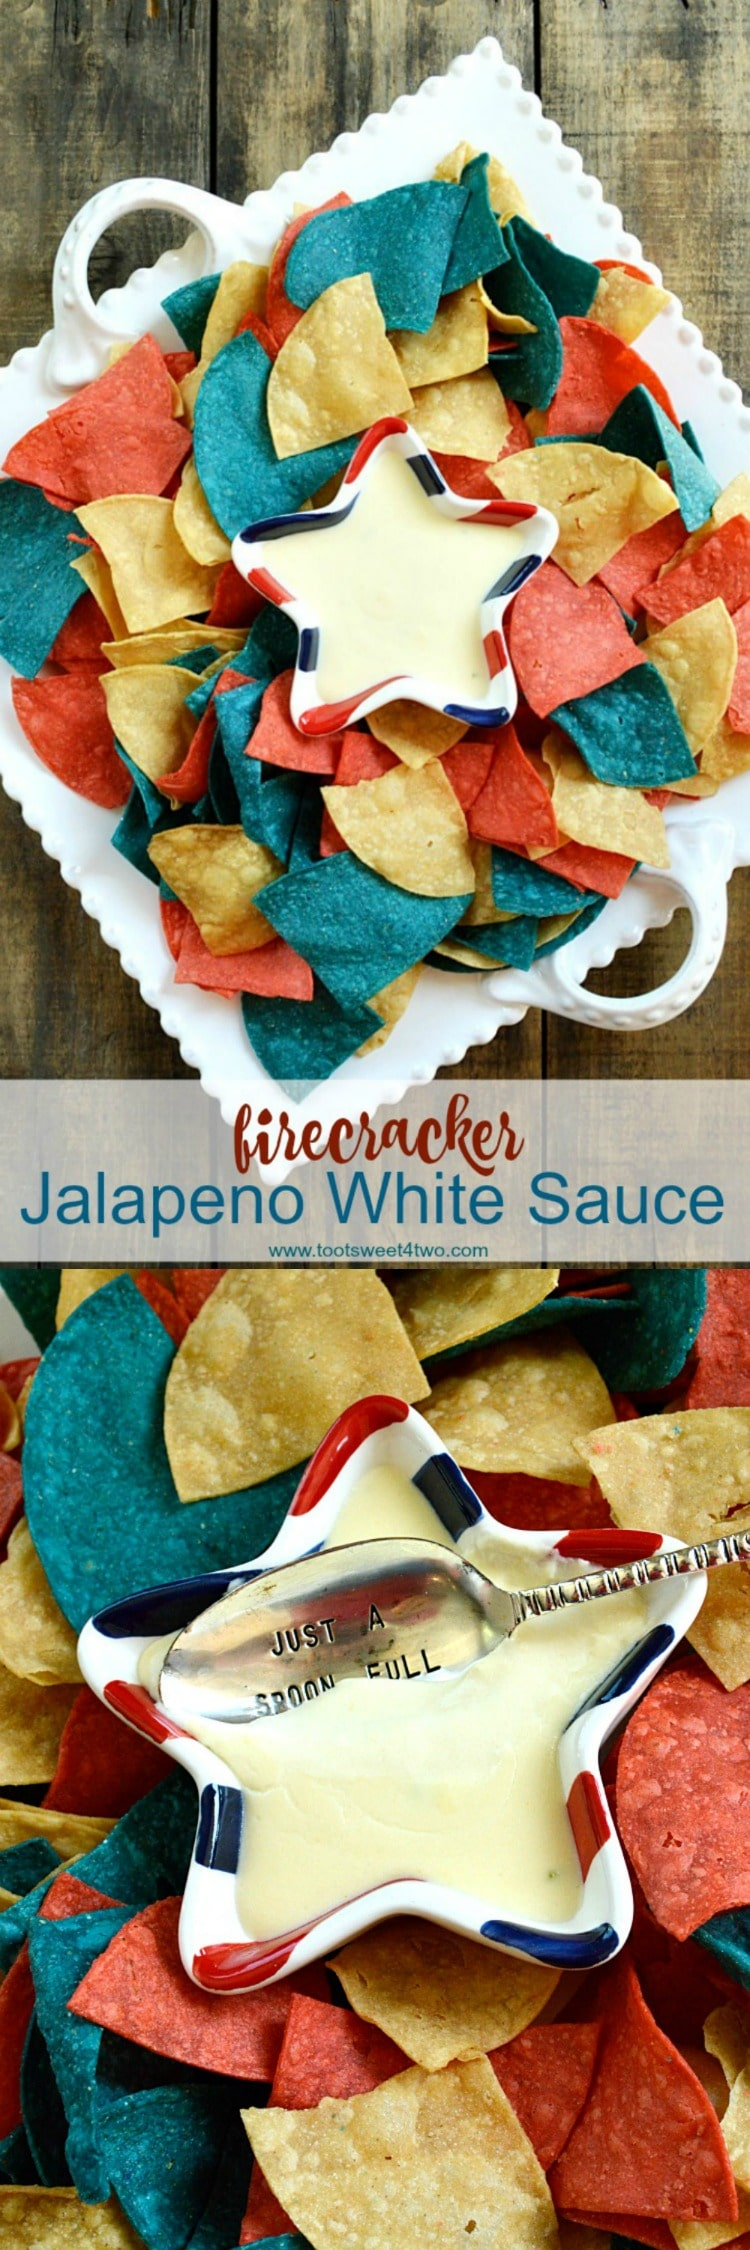 Creamy and delicious, with just a hint of heat from jarred jalapenos, Firecracker Jalapeno White Sauce is a homemade recipe that replicates the dipping sauce served with chips in Mexican restaurants.   www.tootsweet4two.com